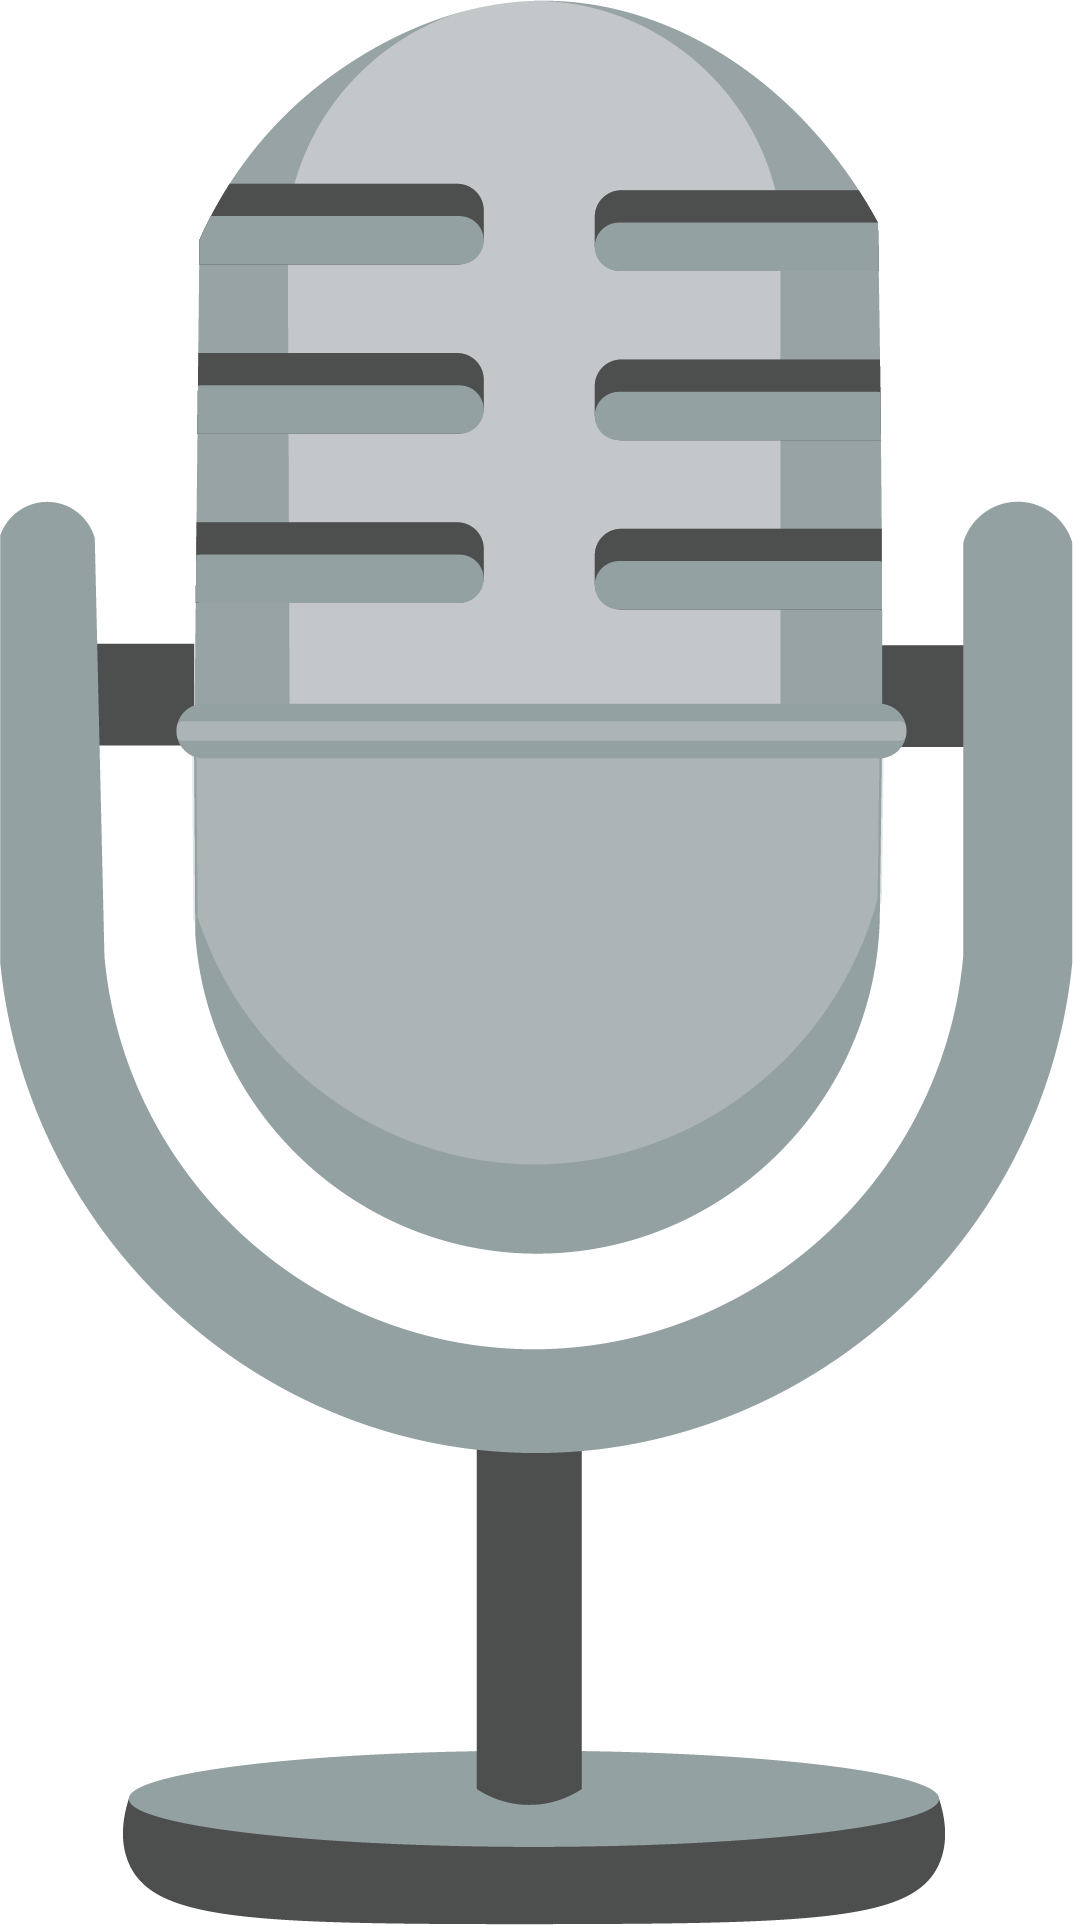 DSA Podcast Microphone